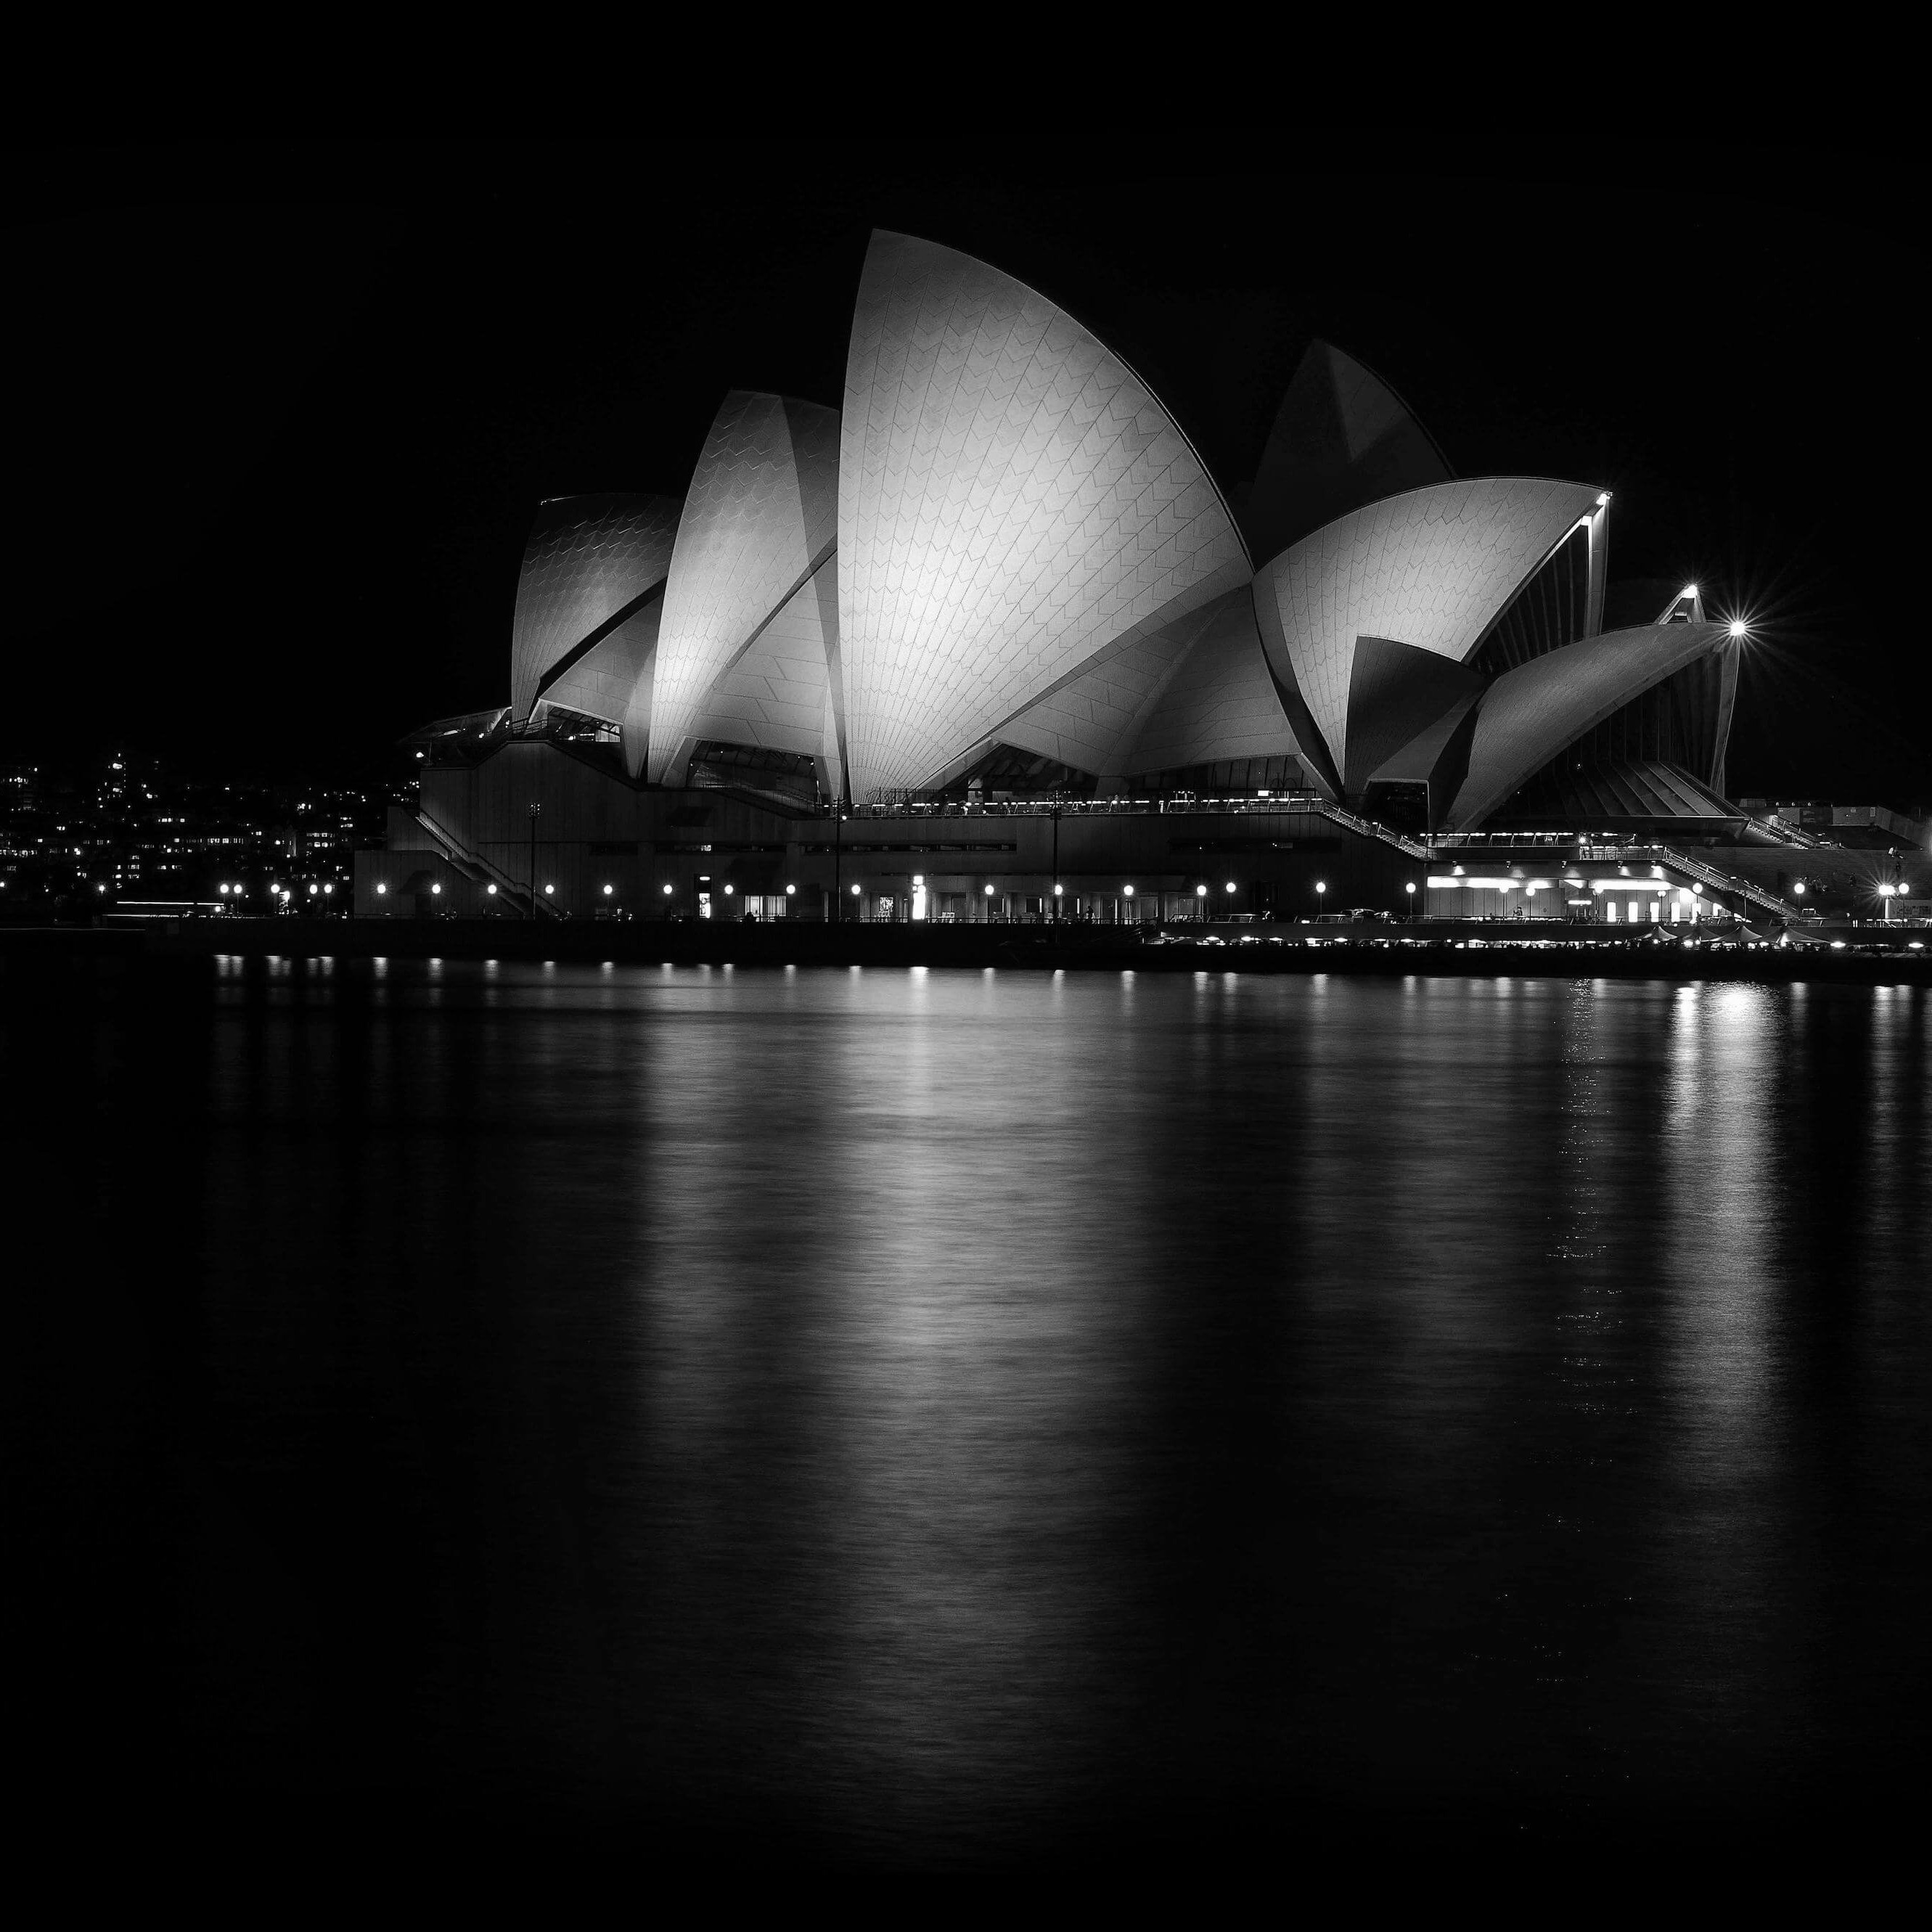 Sydney Opera House at Night in Black & White Wallpaper for Apple iPhone 6 Plus